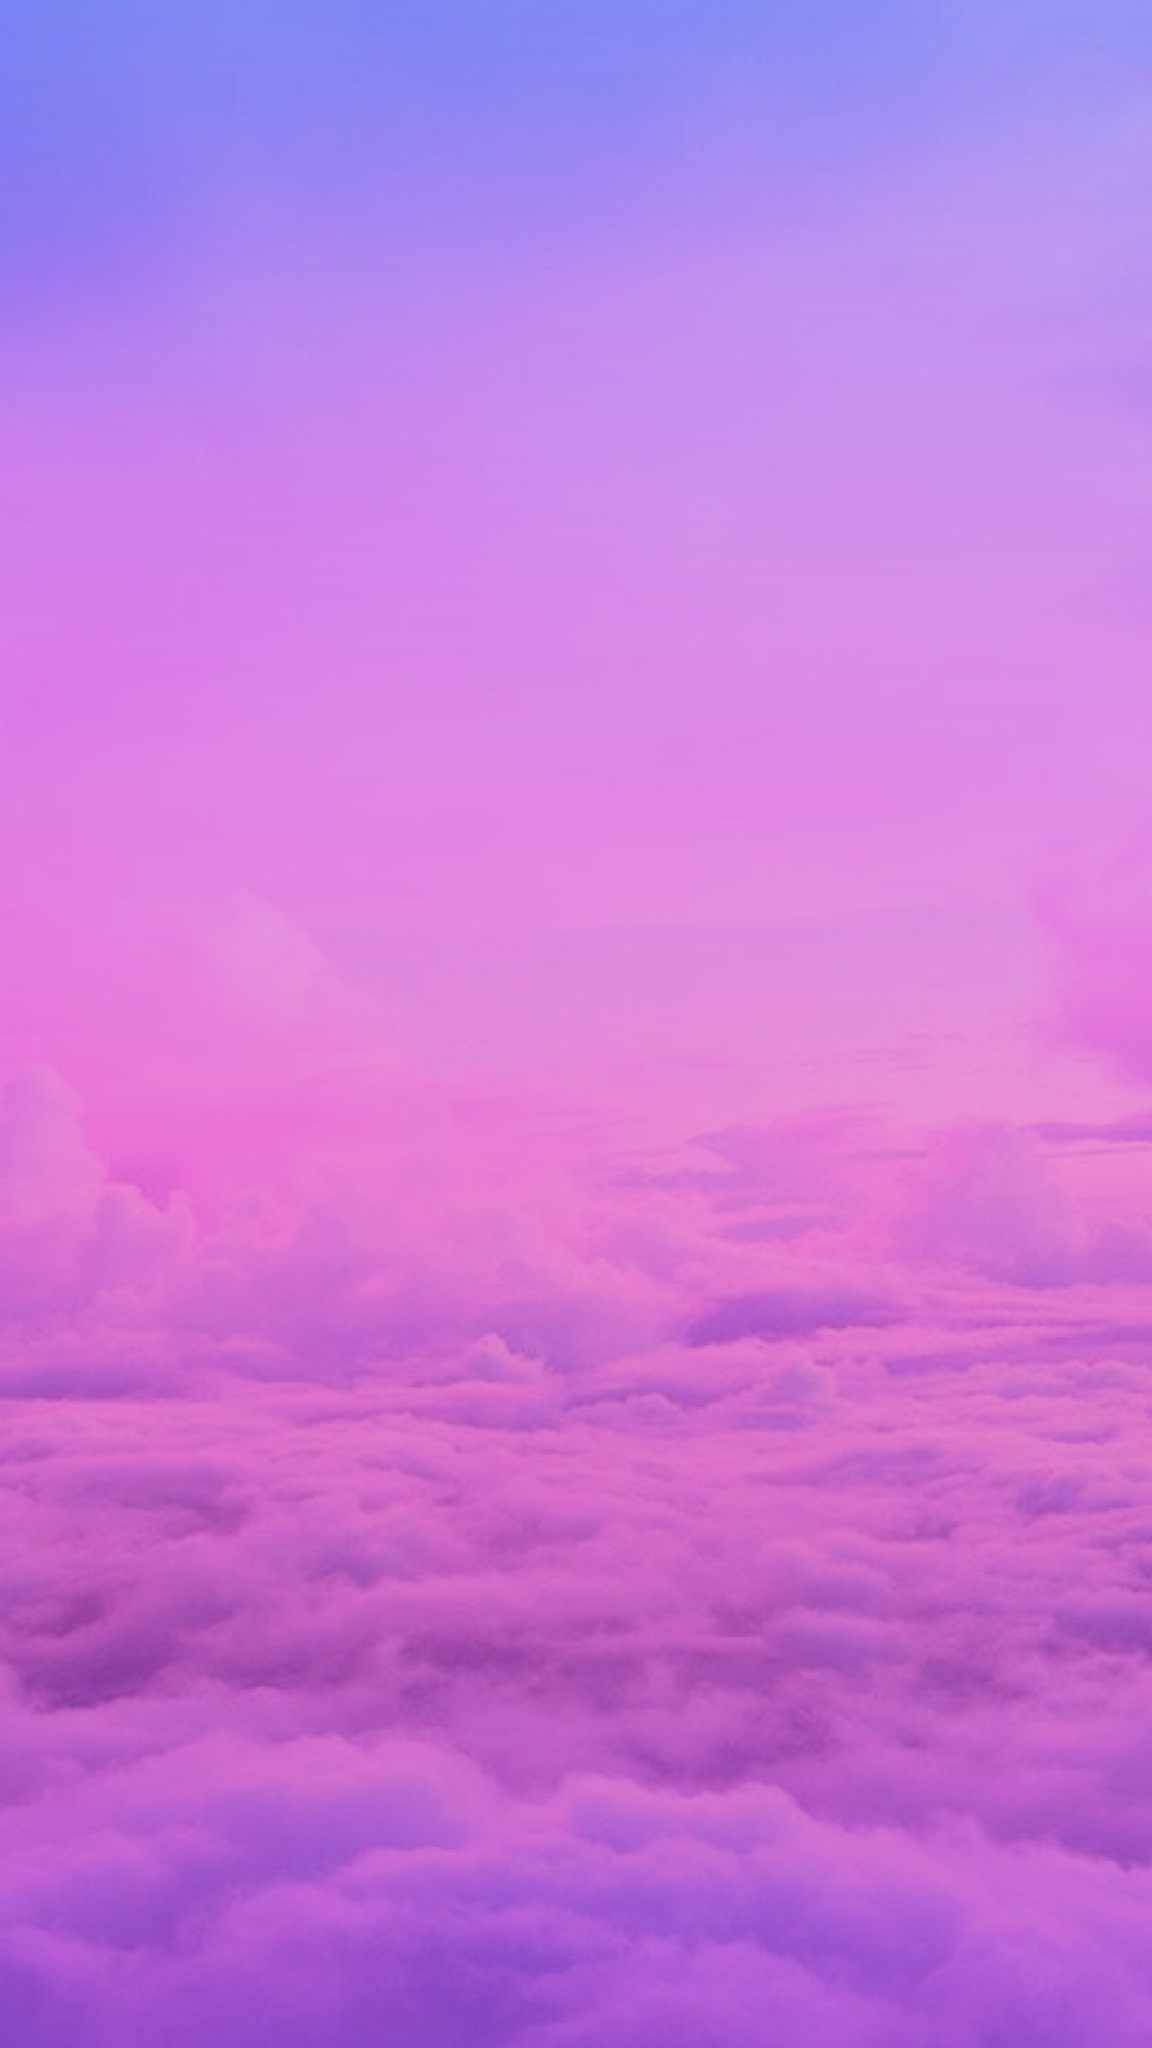 Original image not by me! I just made the ombré/gradient. Wallpaper,